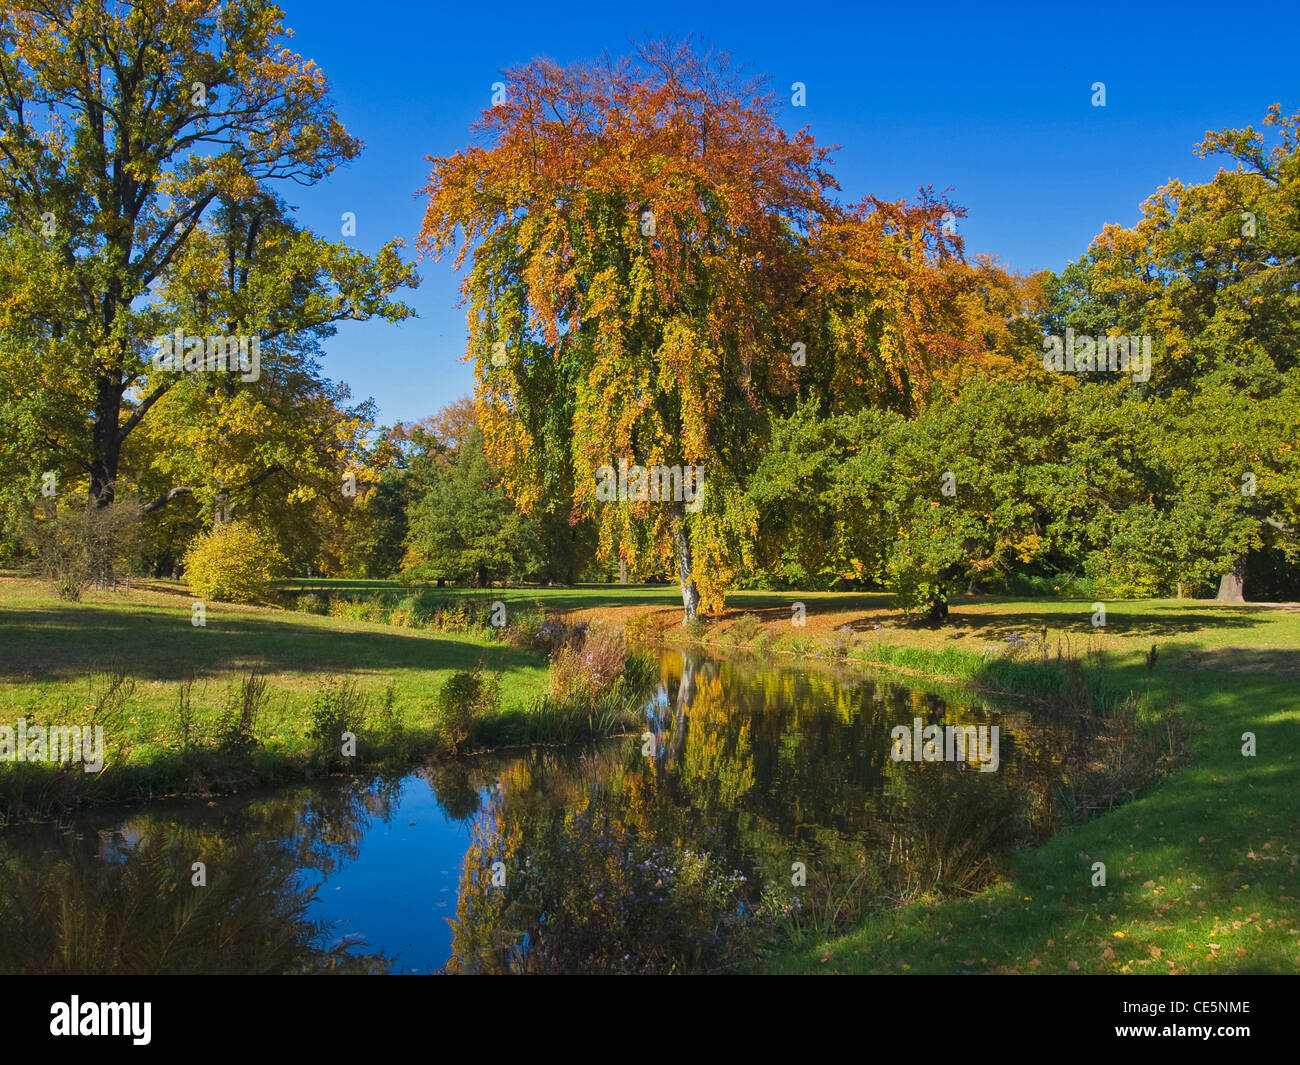 Bäume mit bunten Blättern stehen an einem Kanal | Trees with colored leaves are at a sewer - Stock Image